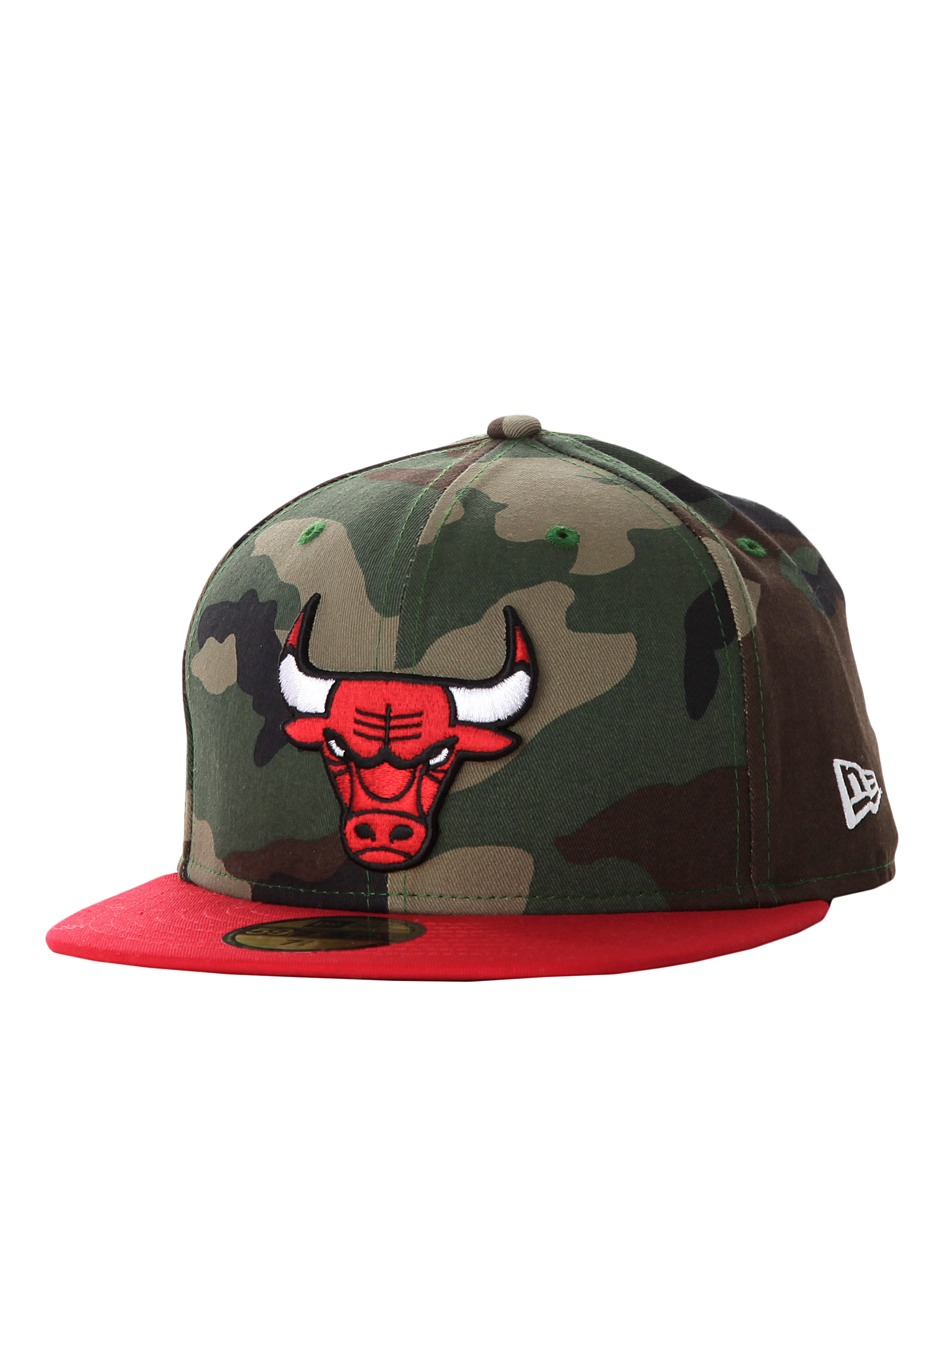 new era camo team visor 950 chicago bulls woodland cap streetwear shop. Black Bedroom Furniture Sets. Home Design Ideas